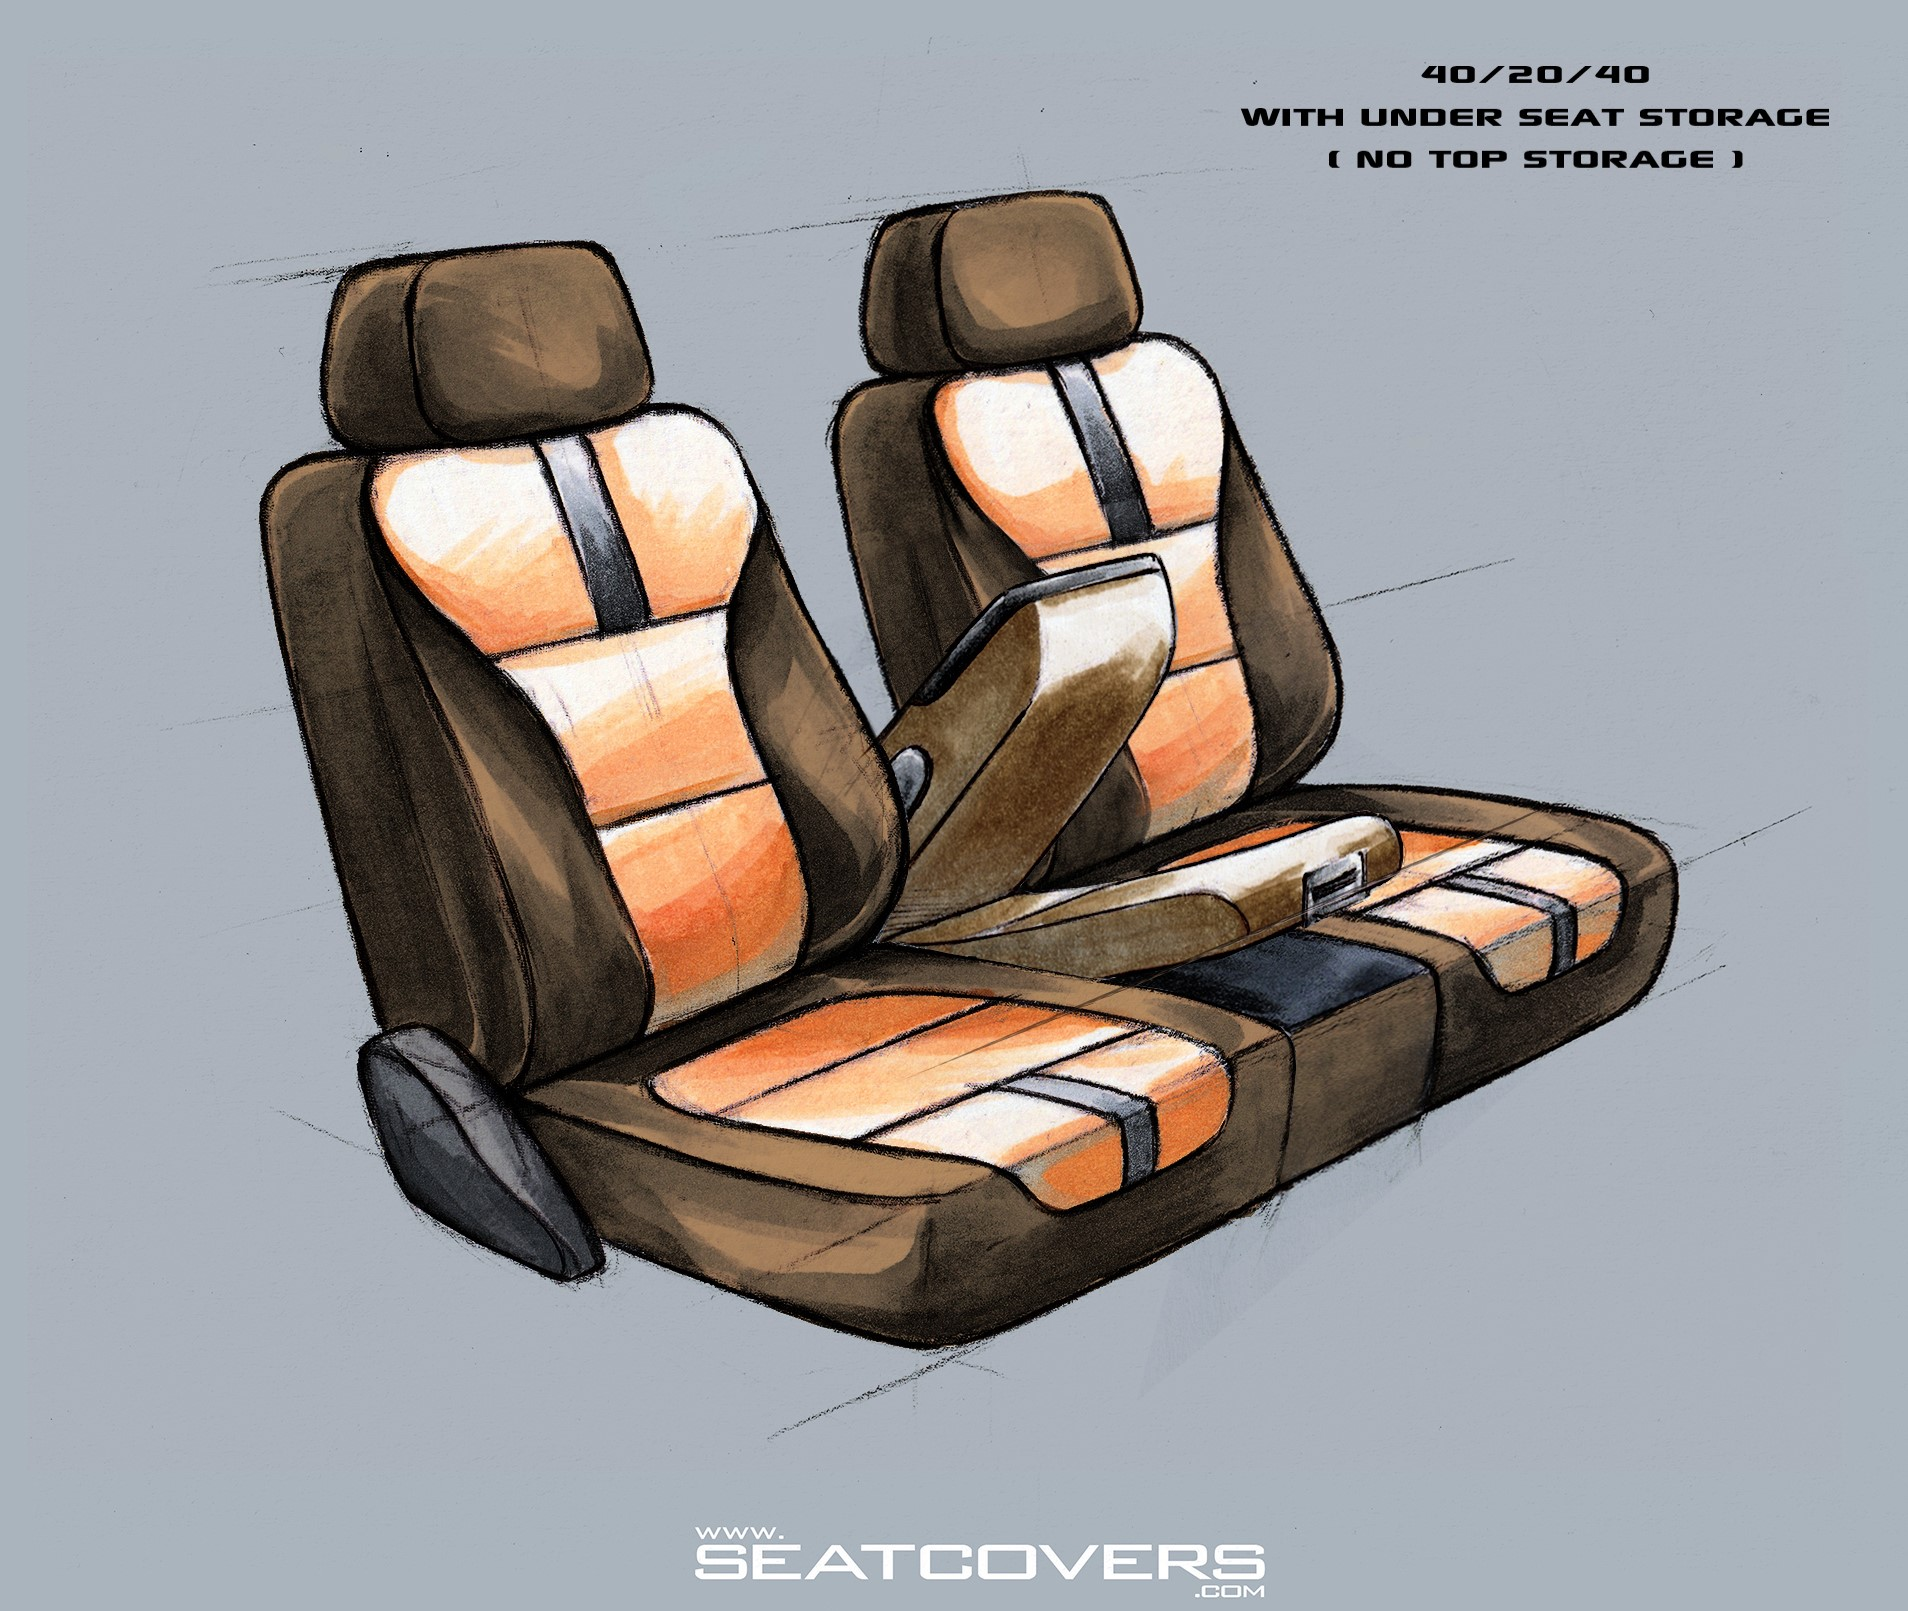 Ford F150 F250 F350 Seat Covers Truck Seat Covers – seatcovers.com